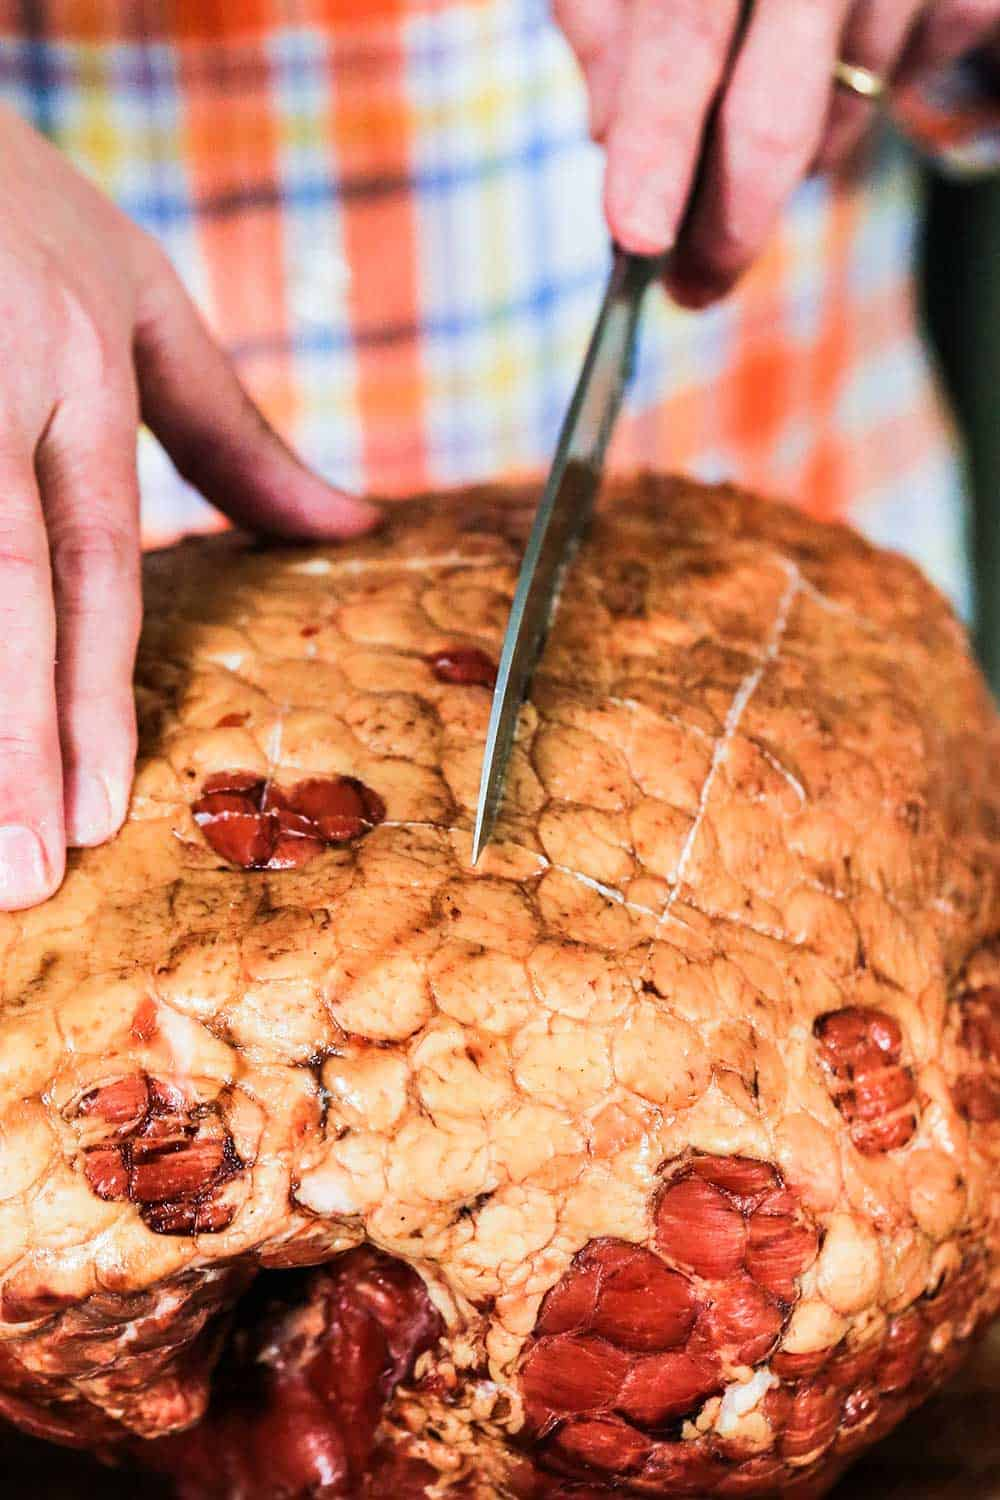 Two hands using a large knife to score the fat cap of a smoked ham.